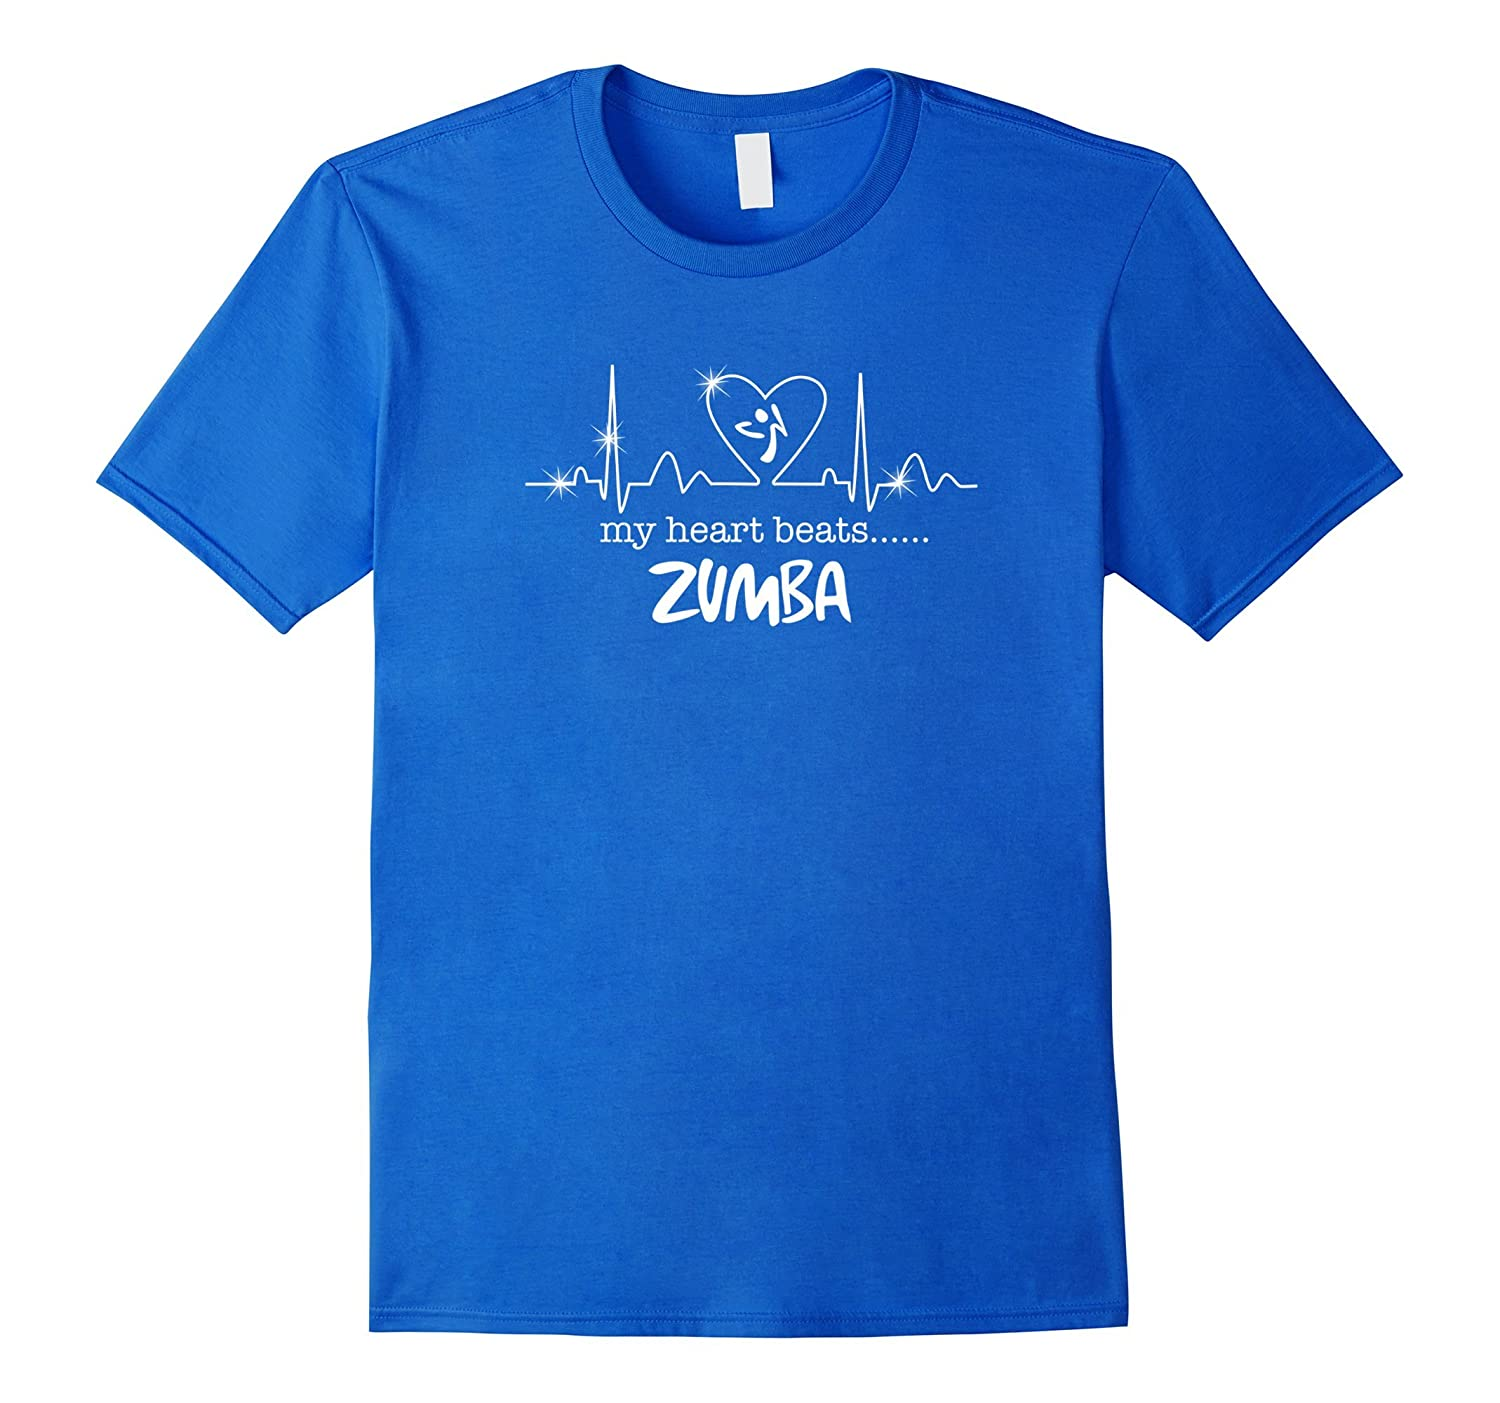 Design t shirt zumba -  My Heart Beats Zumba T Shirt Zumba Lovers T Shirt Best Design T Shirt